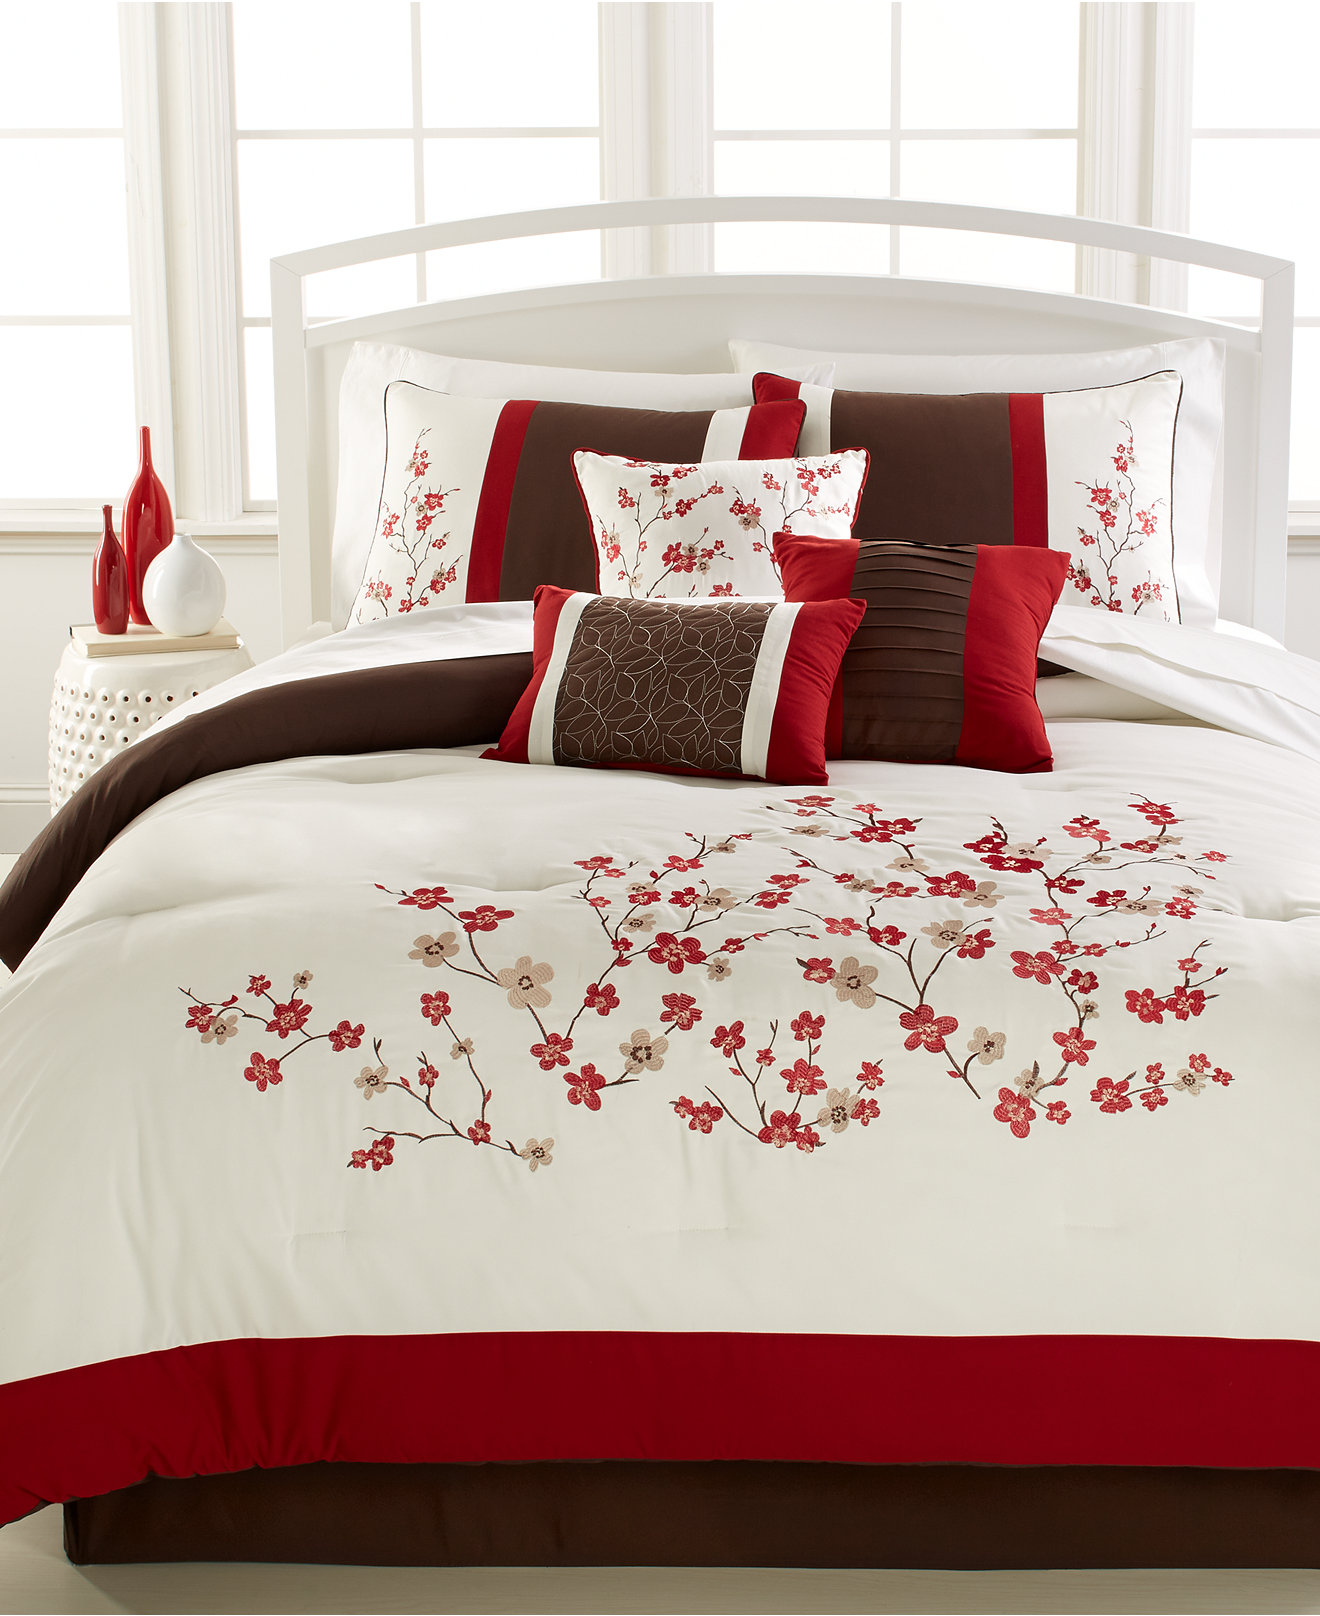 Extravagant Full Comforter Sets Bed Queen Size And King Bedsize Also  Pillows And Cushion Combined With